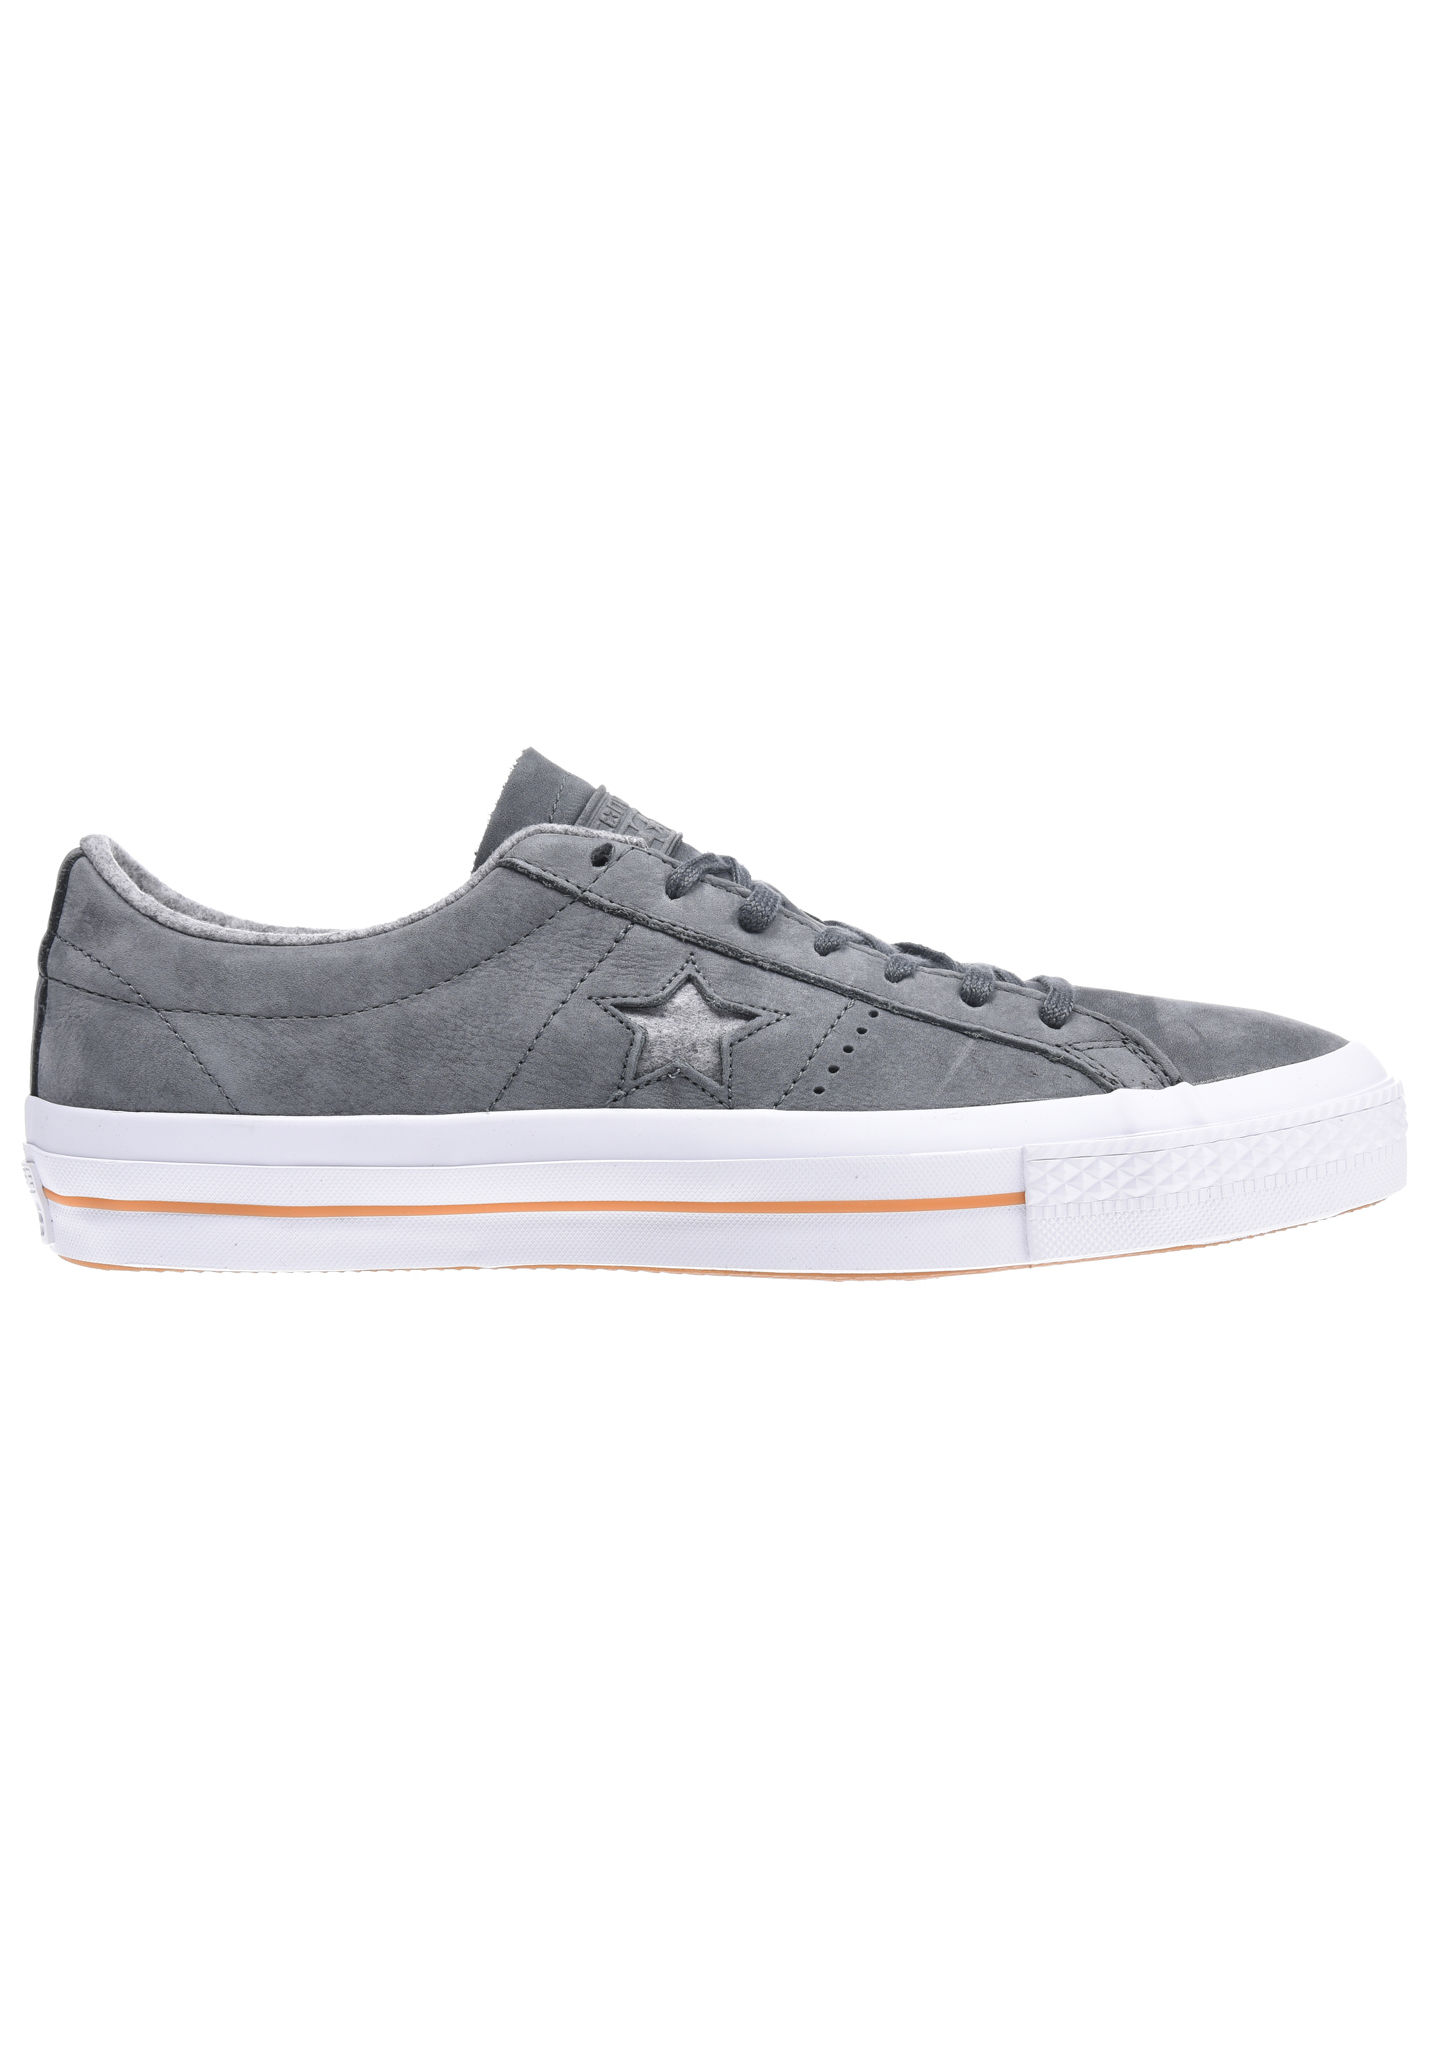 7af0a0087ed186 Converse One Star Nubuck Ox - Sneakers - Grey - Planet Sports